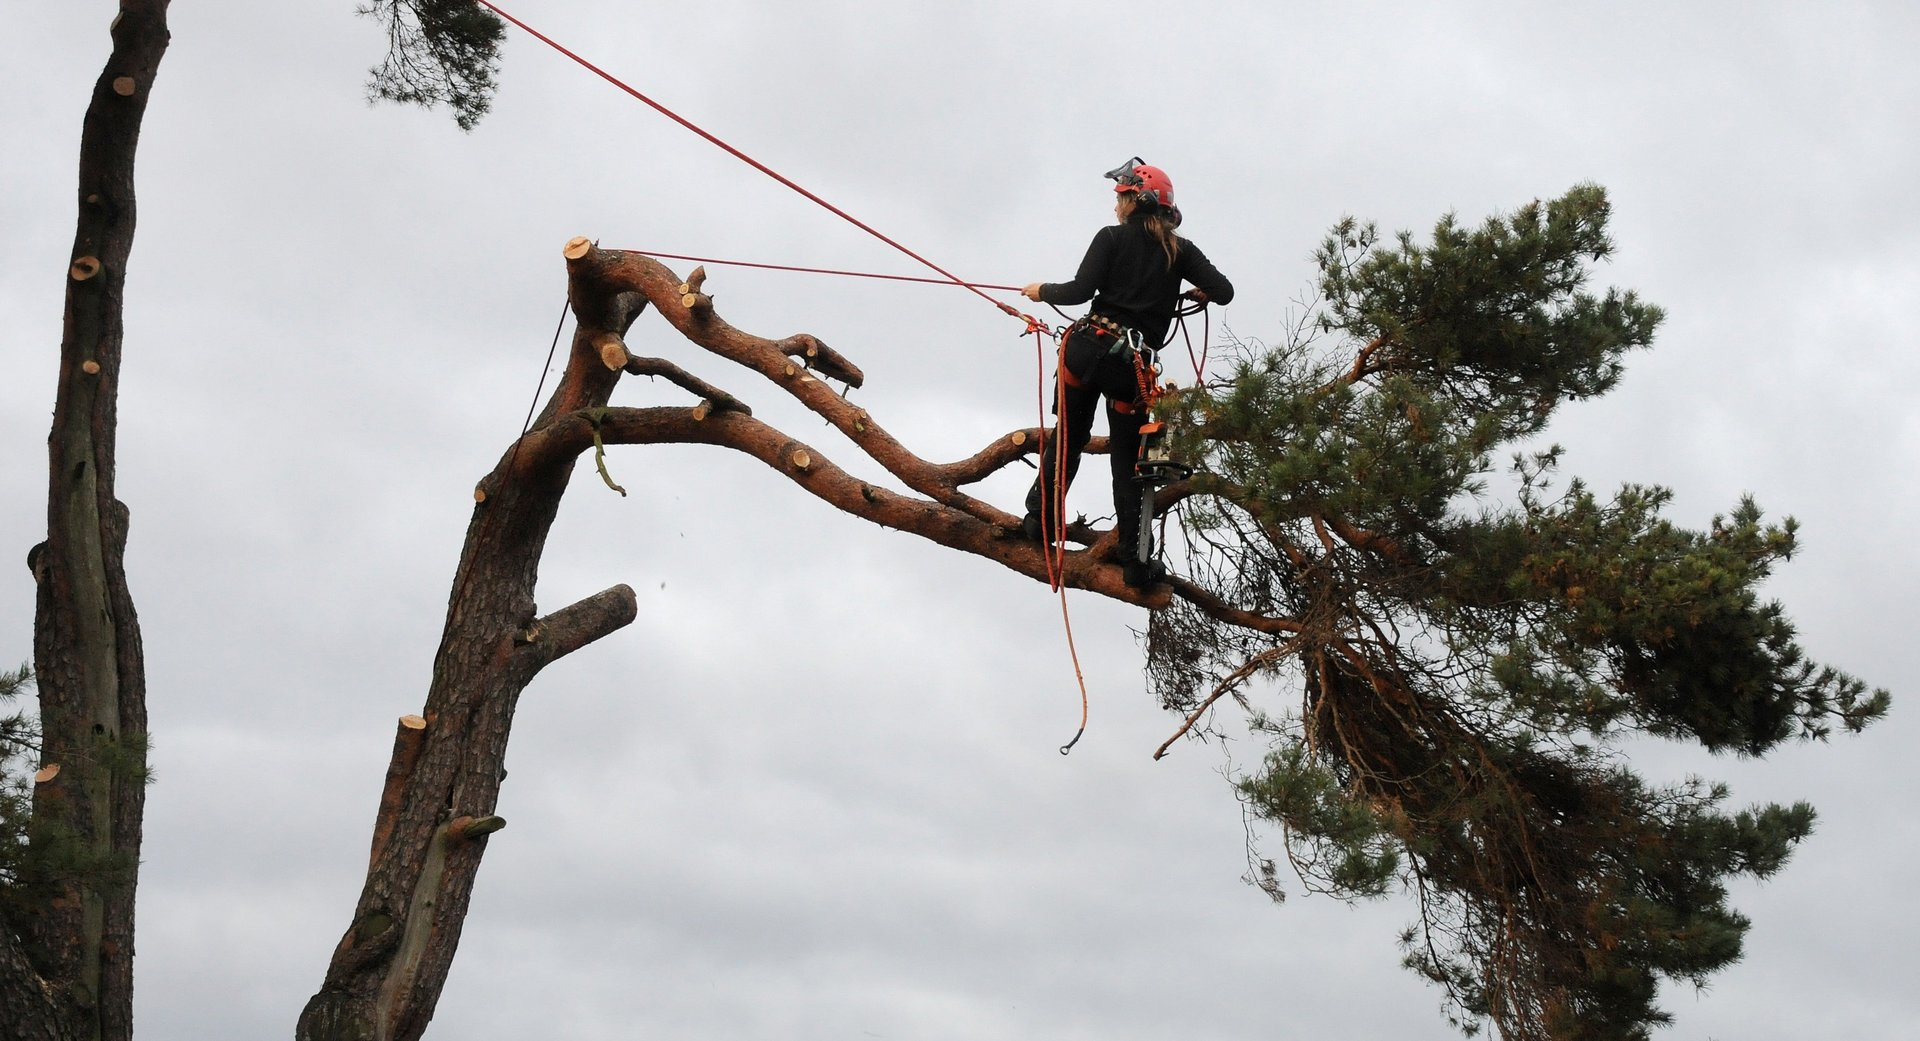 Proper tree trimming ensures safety and preserves aesthesis